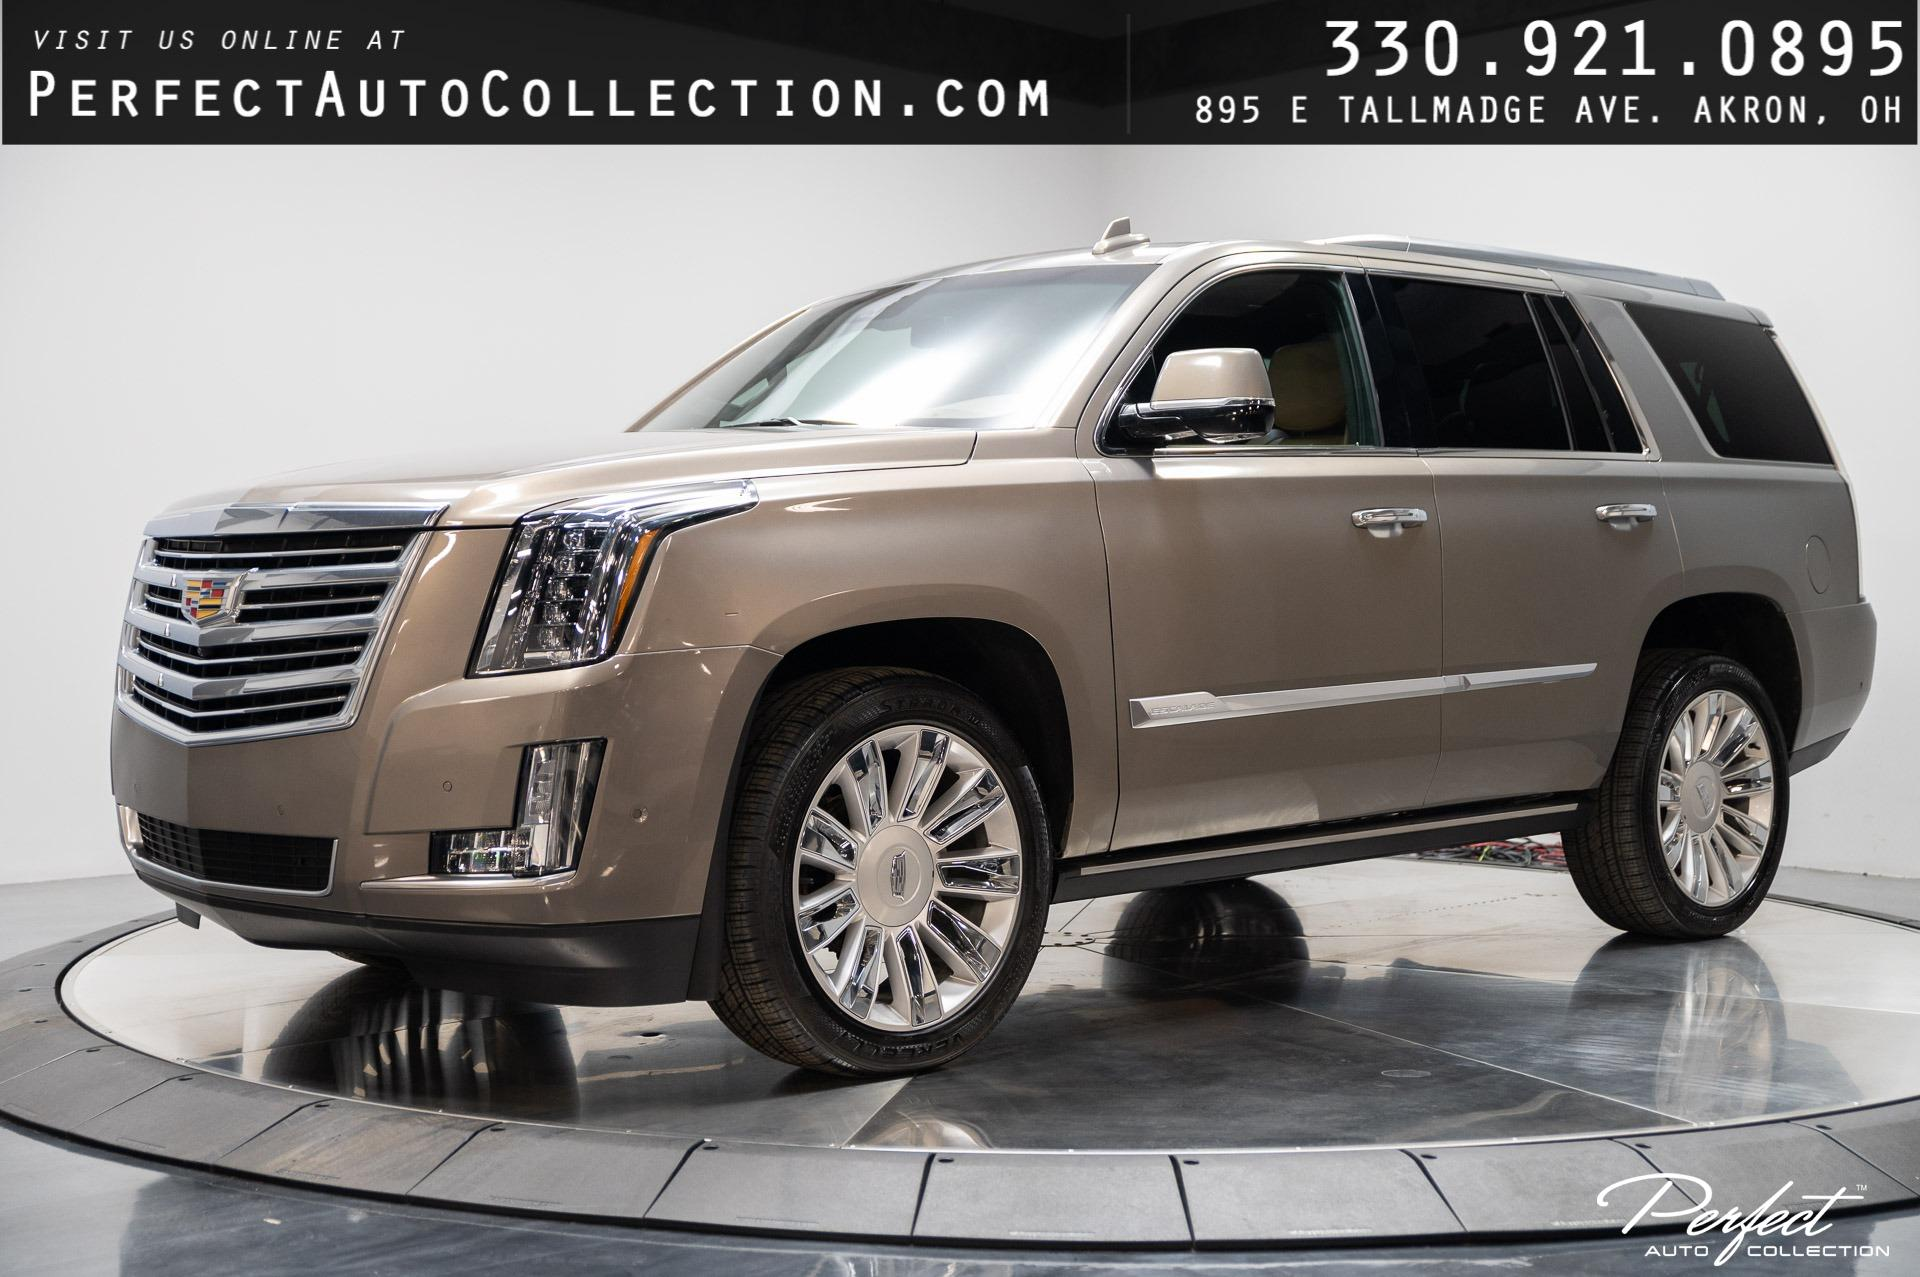 Used 2017 Cadillac Escalade Platinum for sale Sold at Perfect Auto Collection in Akron OH 44310 1